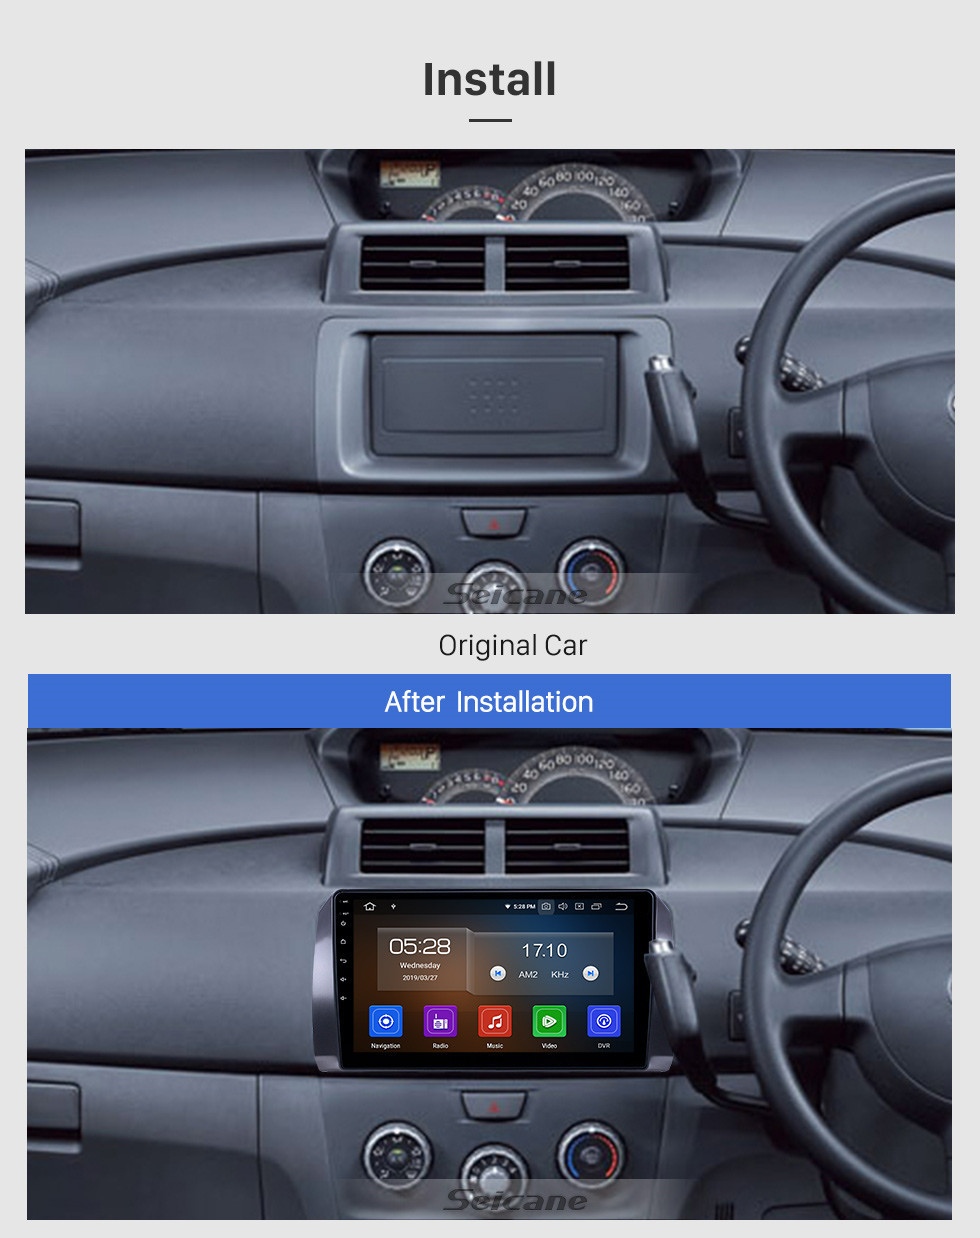 Seicane 10,1 pouces 2006 Toyota B6 / 2008 Subaru DEX / 2005 Daihatsu WO Android 10.0 Radio de navigation GPS Écran tactile Bluetooth Prise en charge de Carplay Lien Mirror